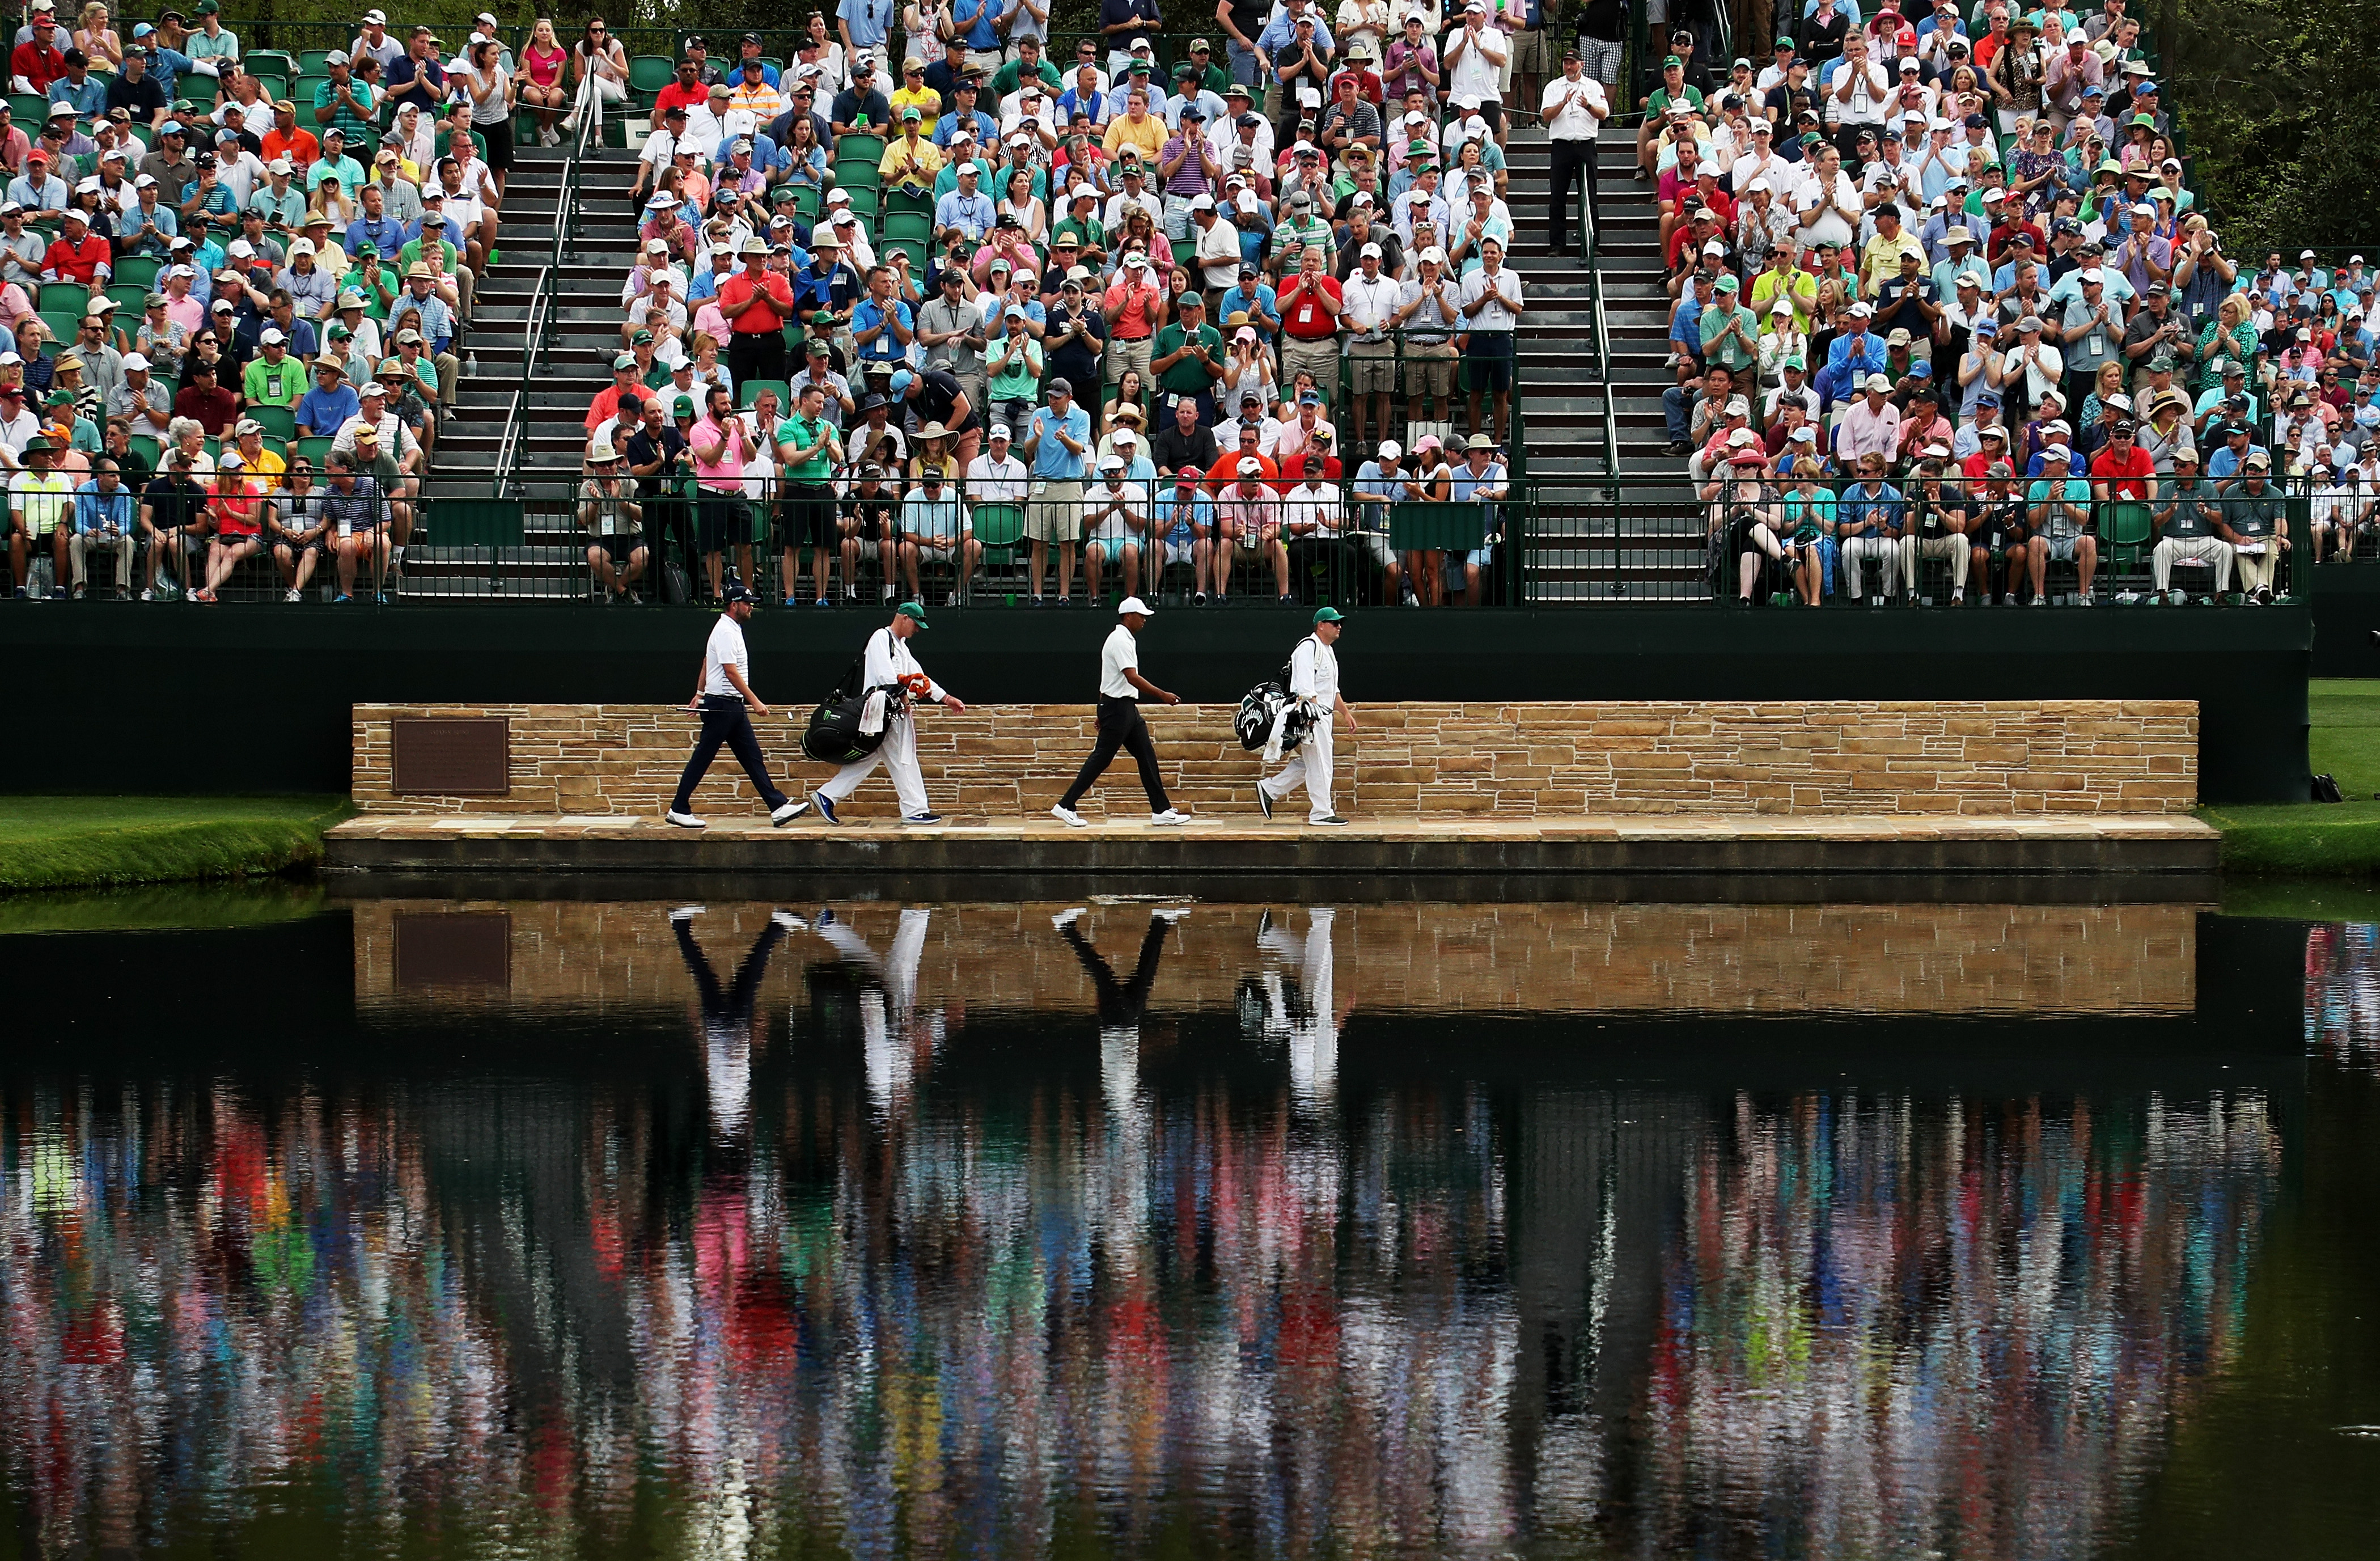 Marc Leishman of Australia and Tiger Woods of the United States cross the Sarazen Bridge on the 16th hole during the second round of the 2018 Masters Tournament at Augusta National Golf Club on April 6, 2018 in Augusta, Georgia.